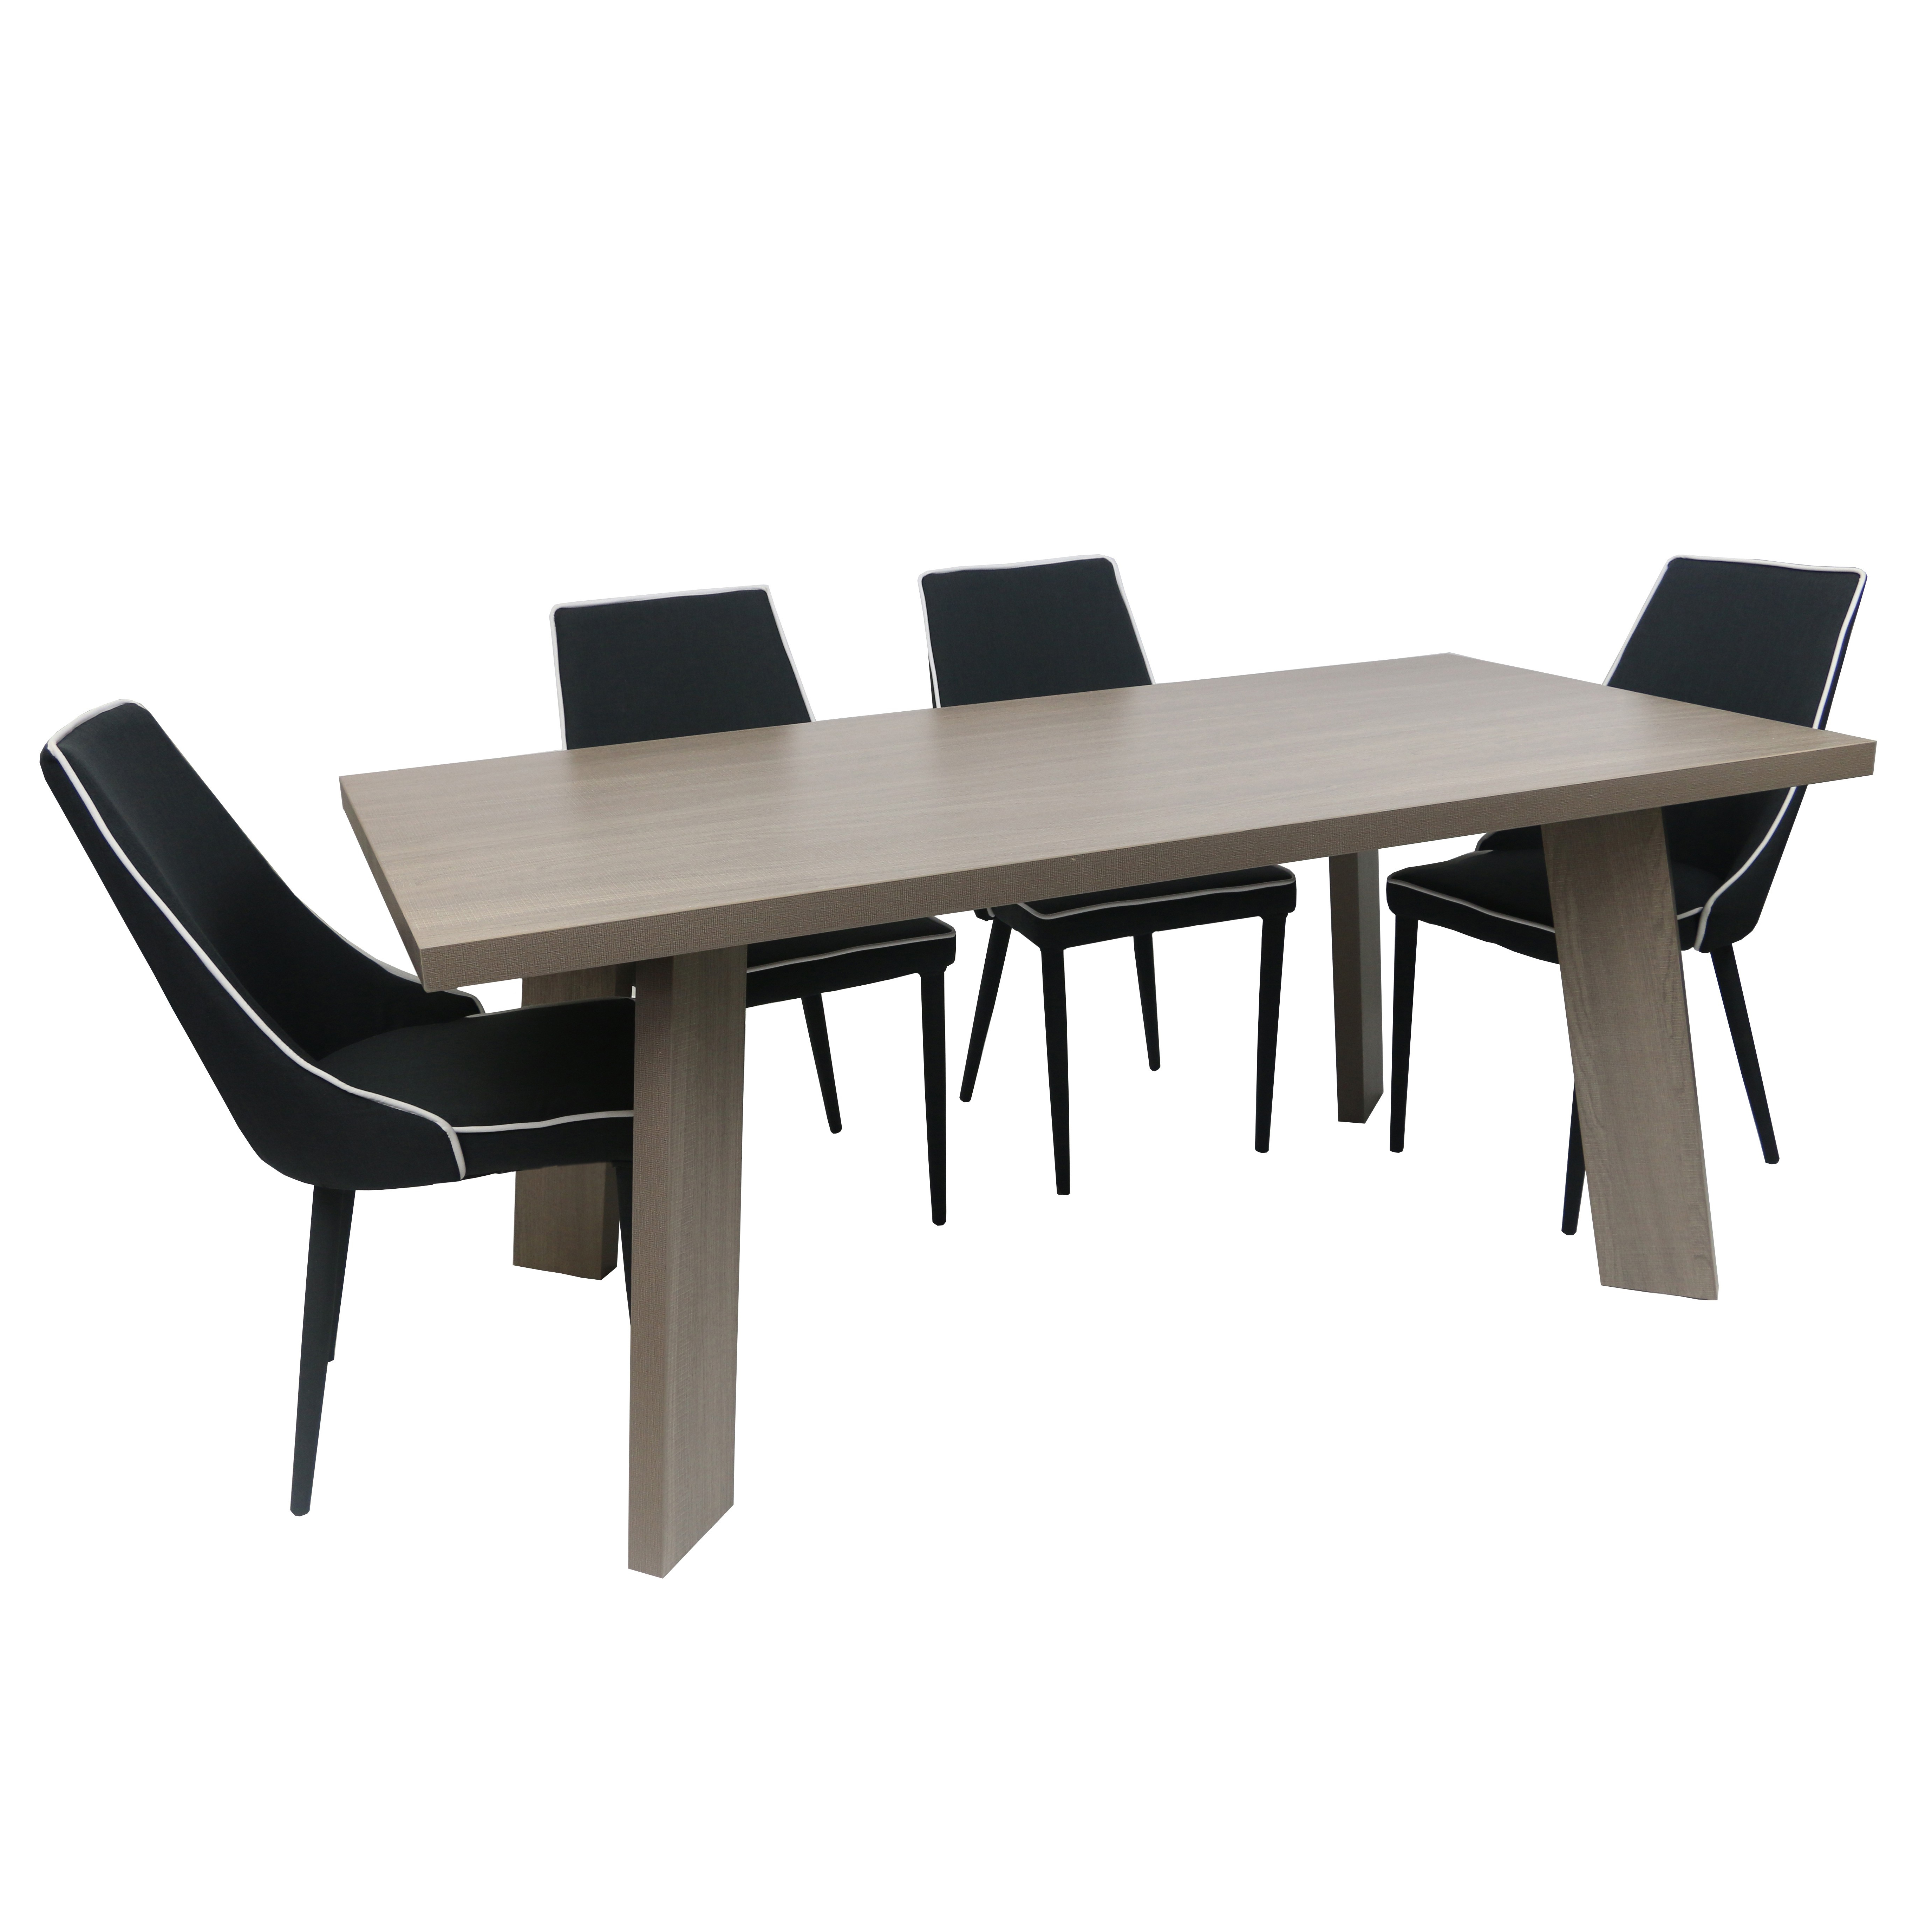 Favorite Lonon 3 Piece Dining Sets For Melamine Dining Table London In 3 Colors (View 8 of 25)